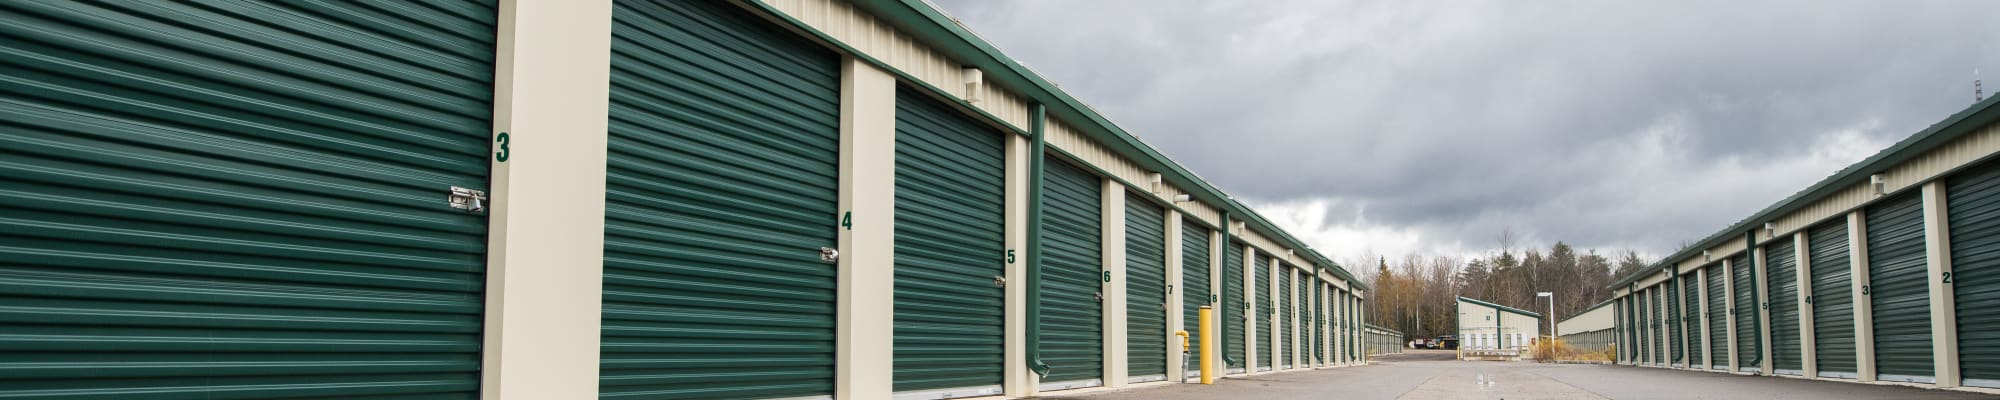 Reviews for Apple Self Storage - Aurora in Aurora, Ontario